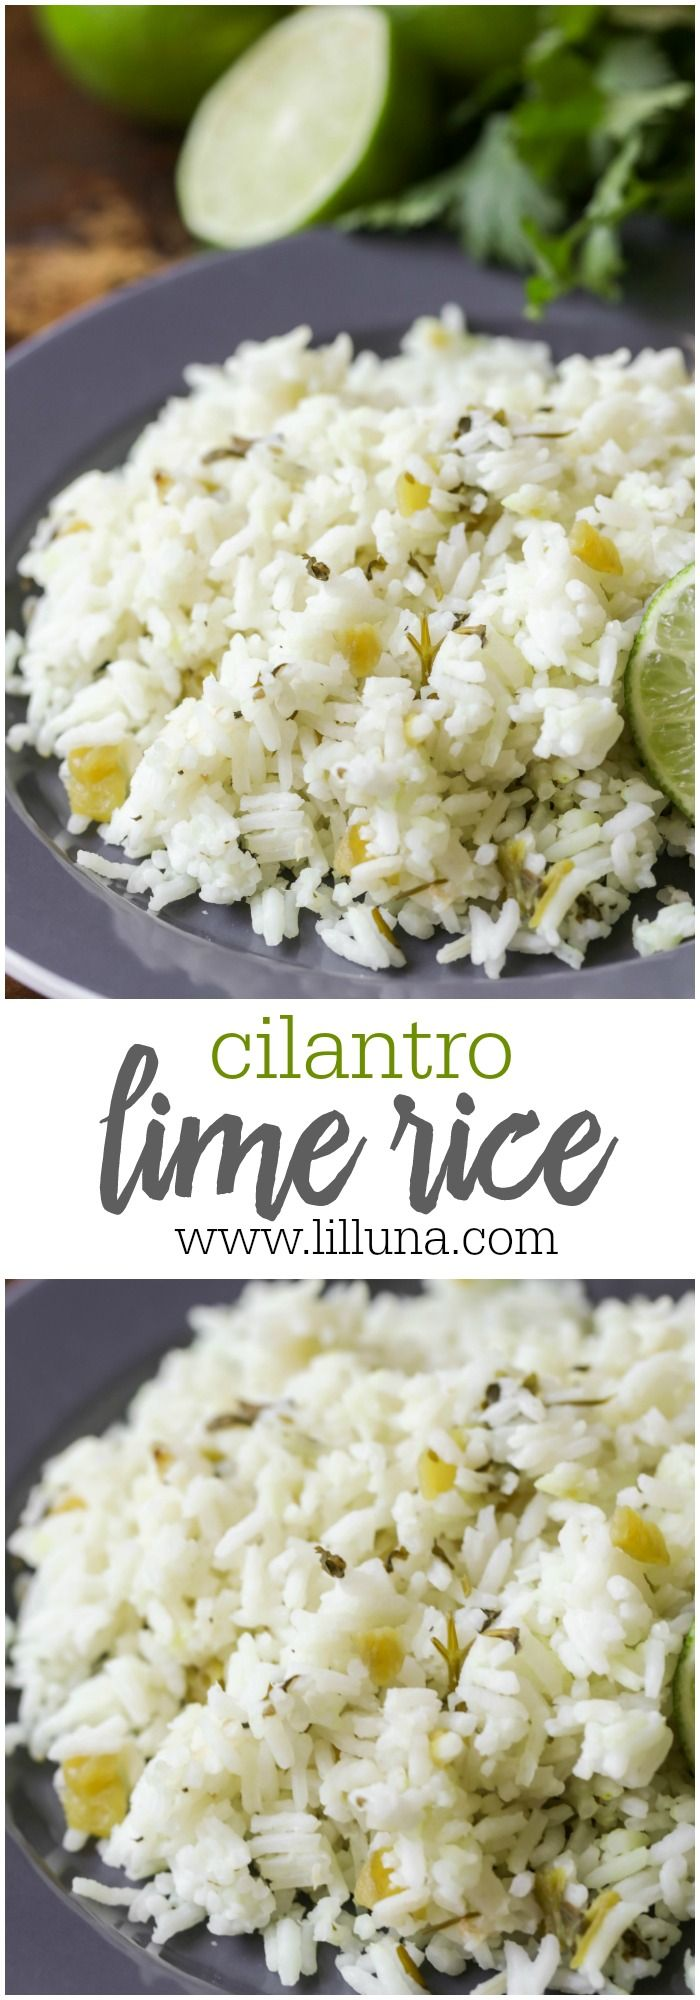 Copycat Cafe Rio Cilantro Lime Rice - a simple and flavorful recipe for rice perfect as a side dish with any of your Mexican meals.